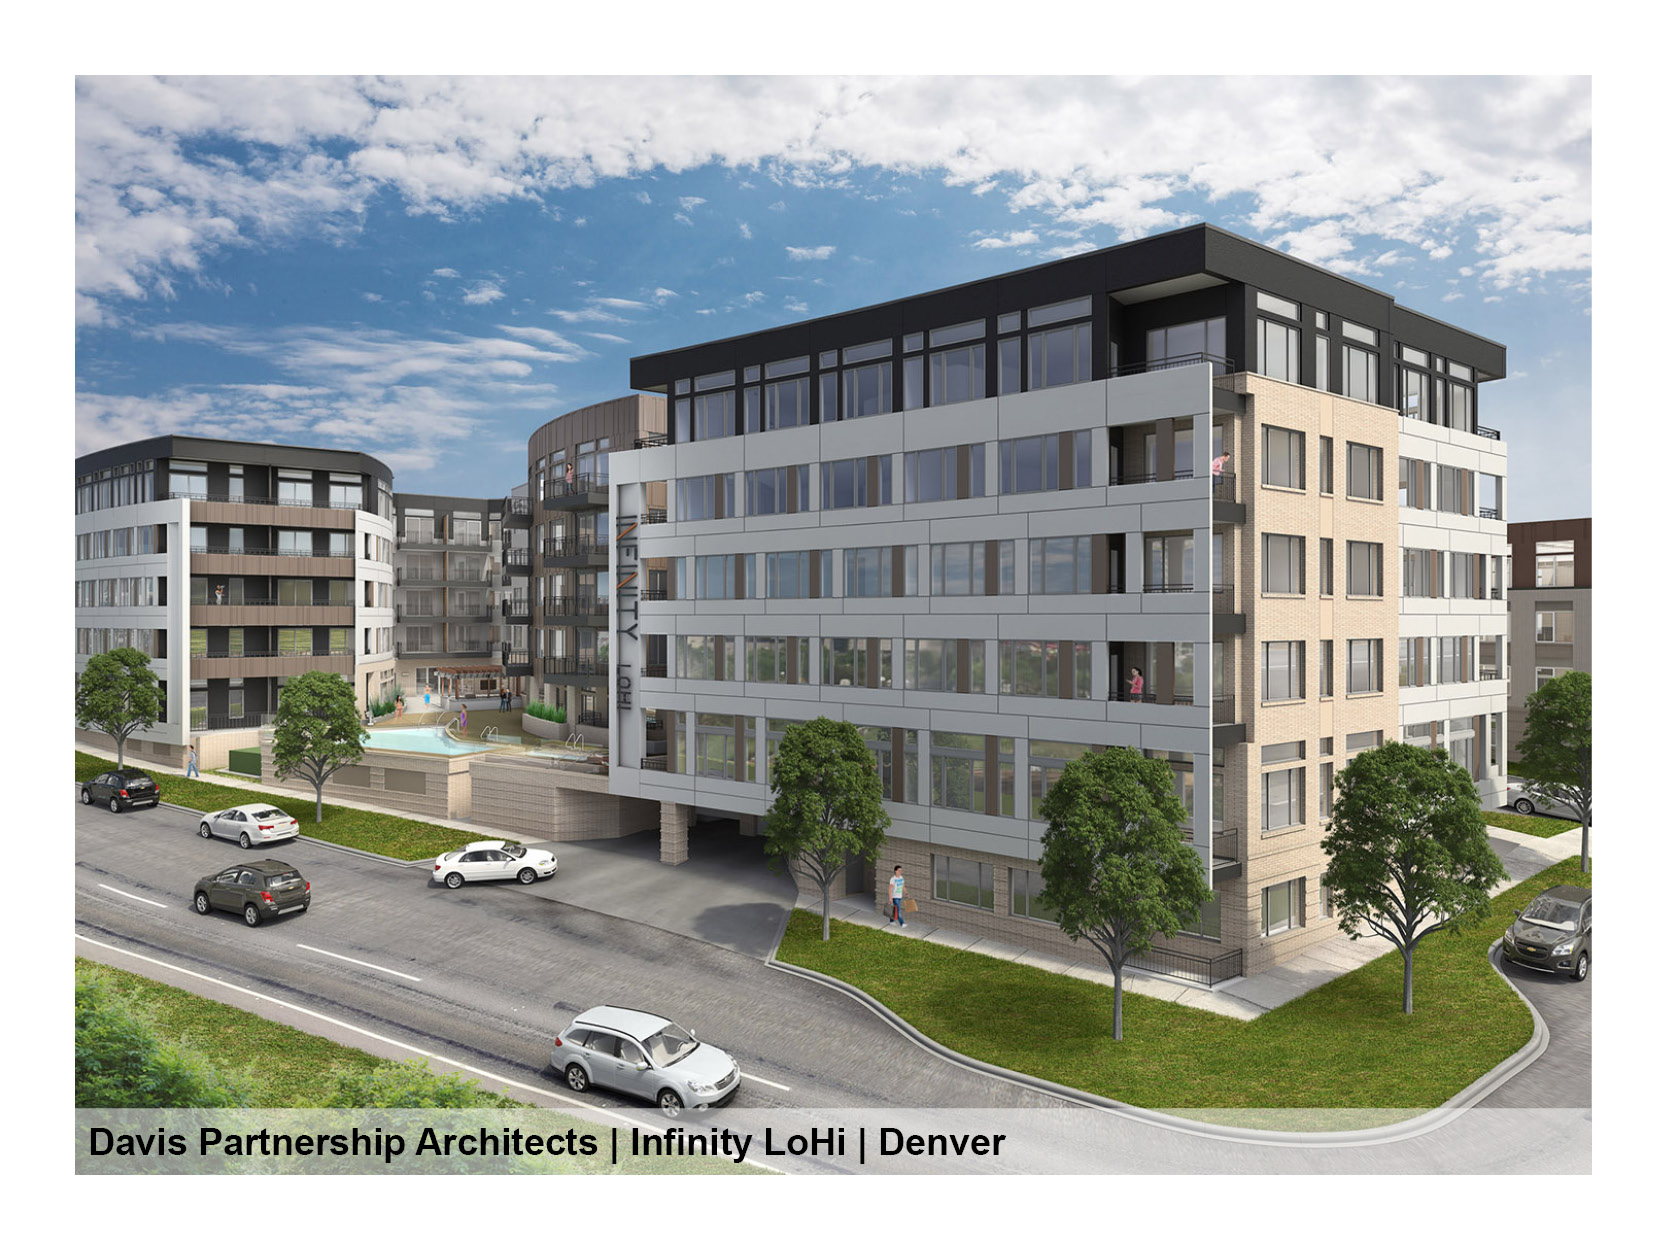 Davis Partnership Architects | Infinity LoHi | Denver